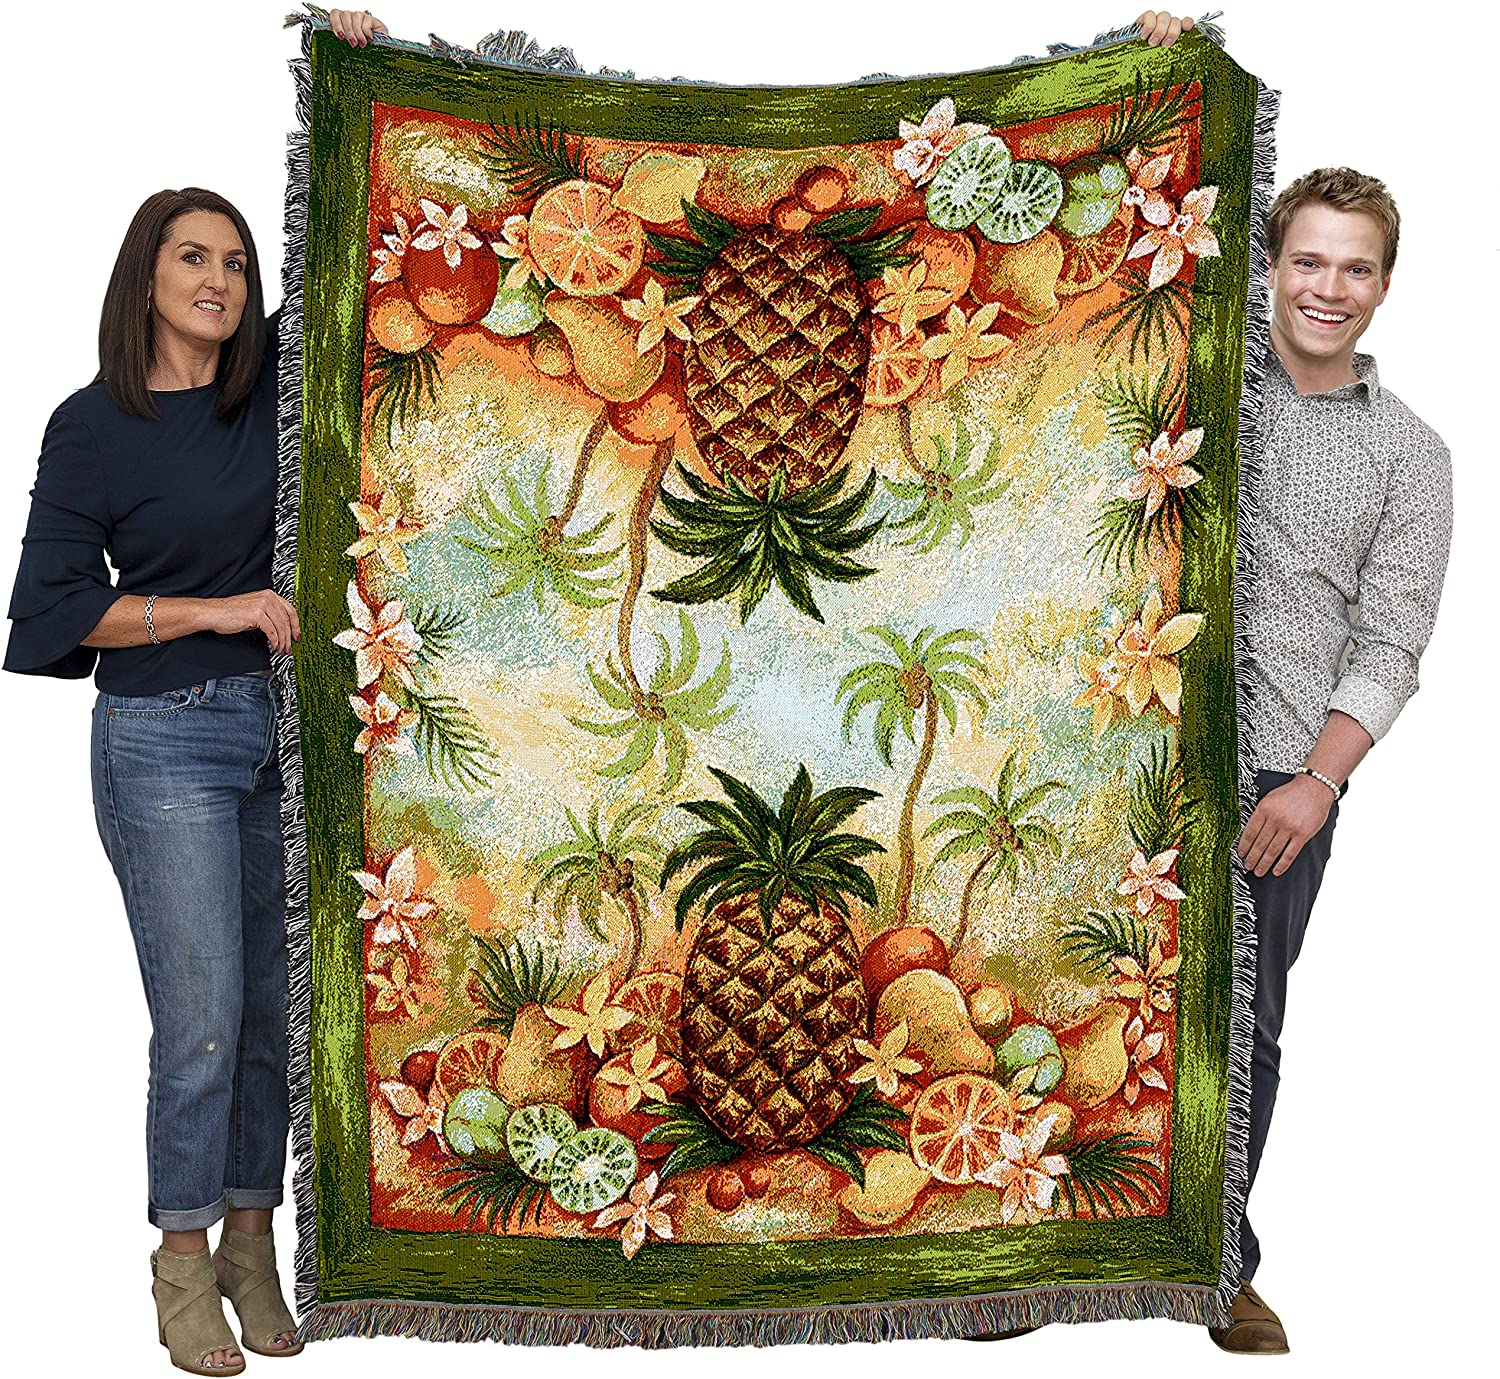 B000ZES170 Pure Country Weavers Pineapple Cute Colorful Throw Blanket for Beachy Boho Pinnapple Décor Symbol of Hospitality Large Woven Cotton Made in The USA 72x54 A18cwQ2OzVL